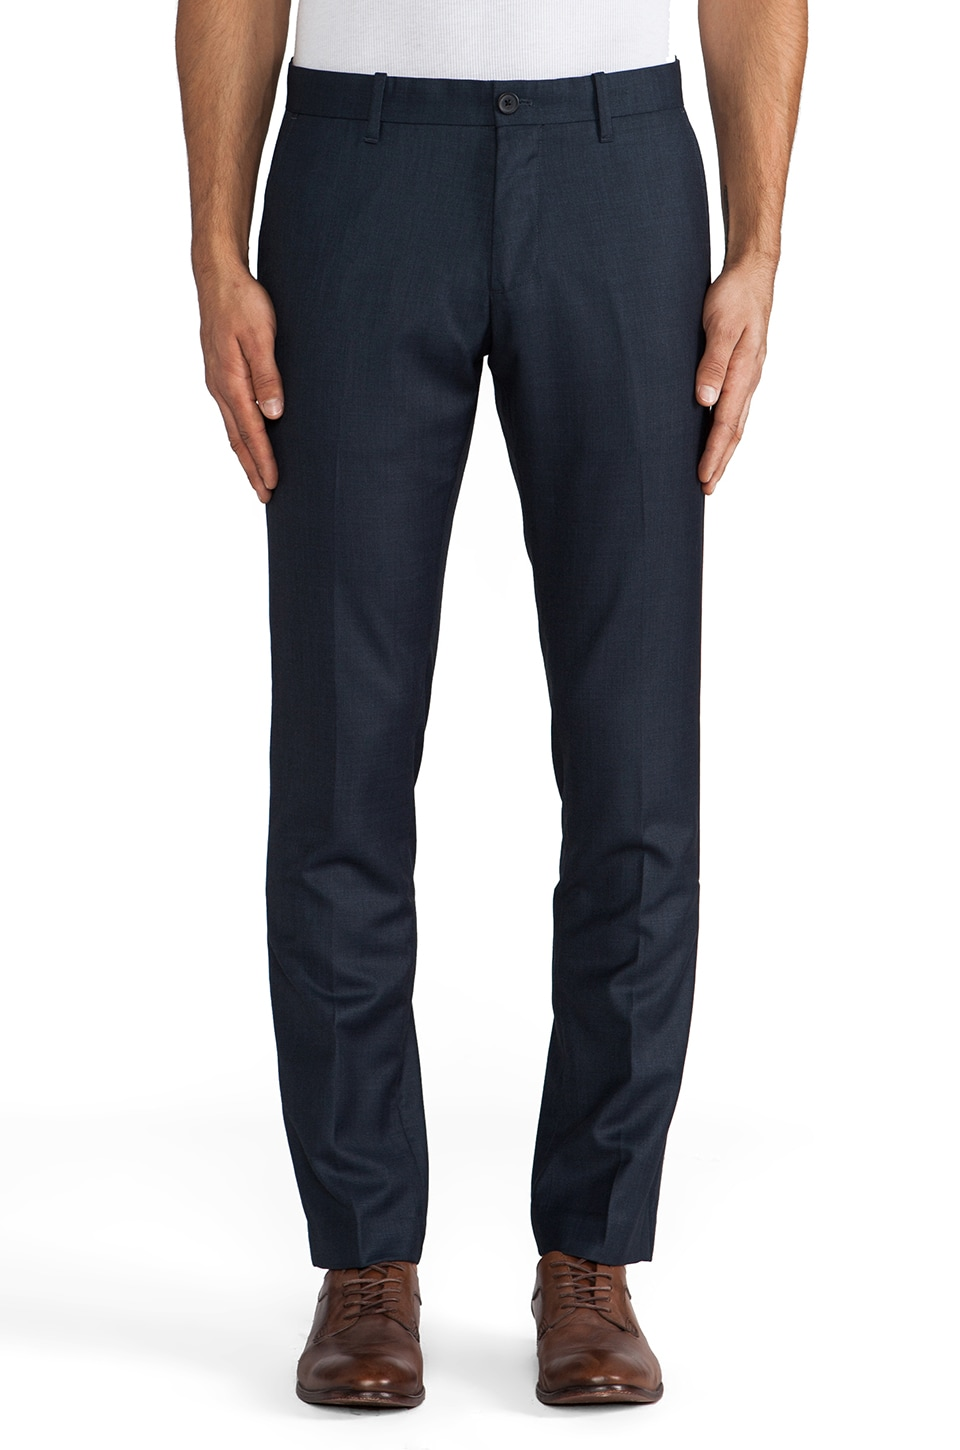 Penguin Heather Tailored Pant en Blue Teal